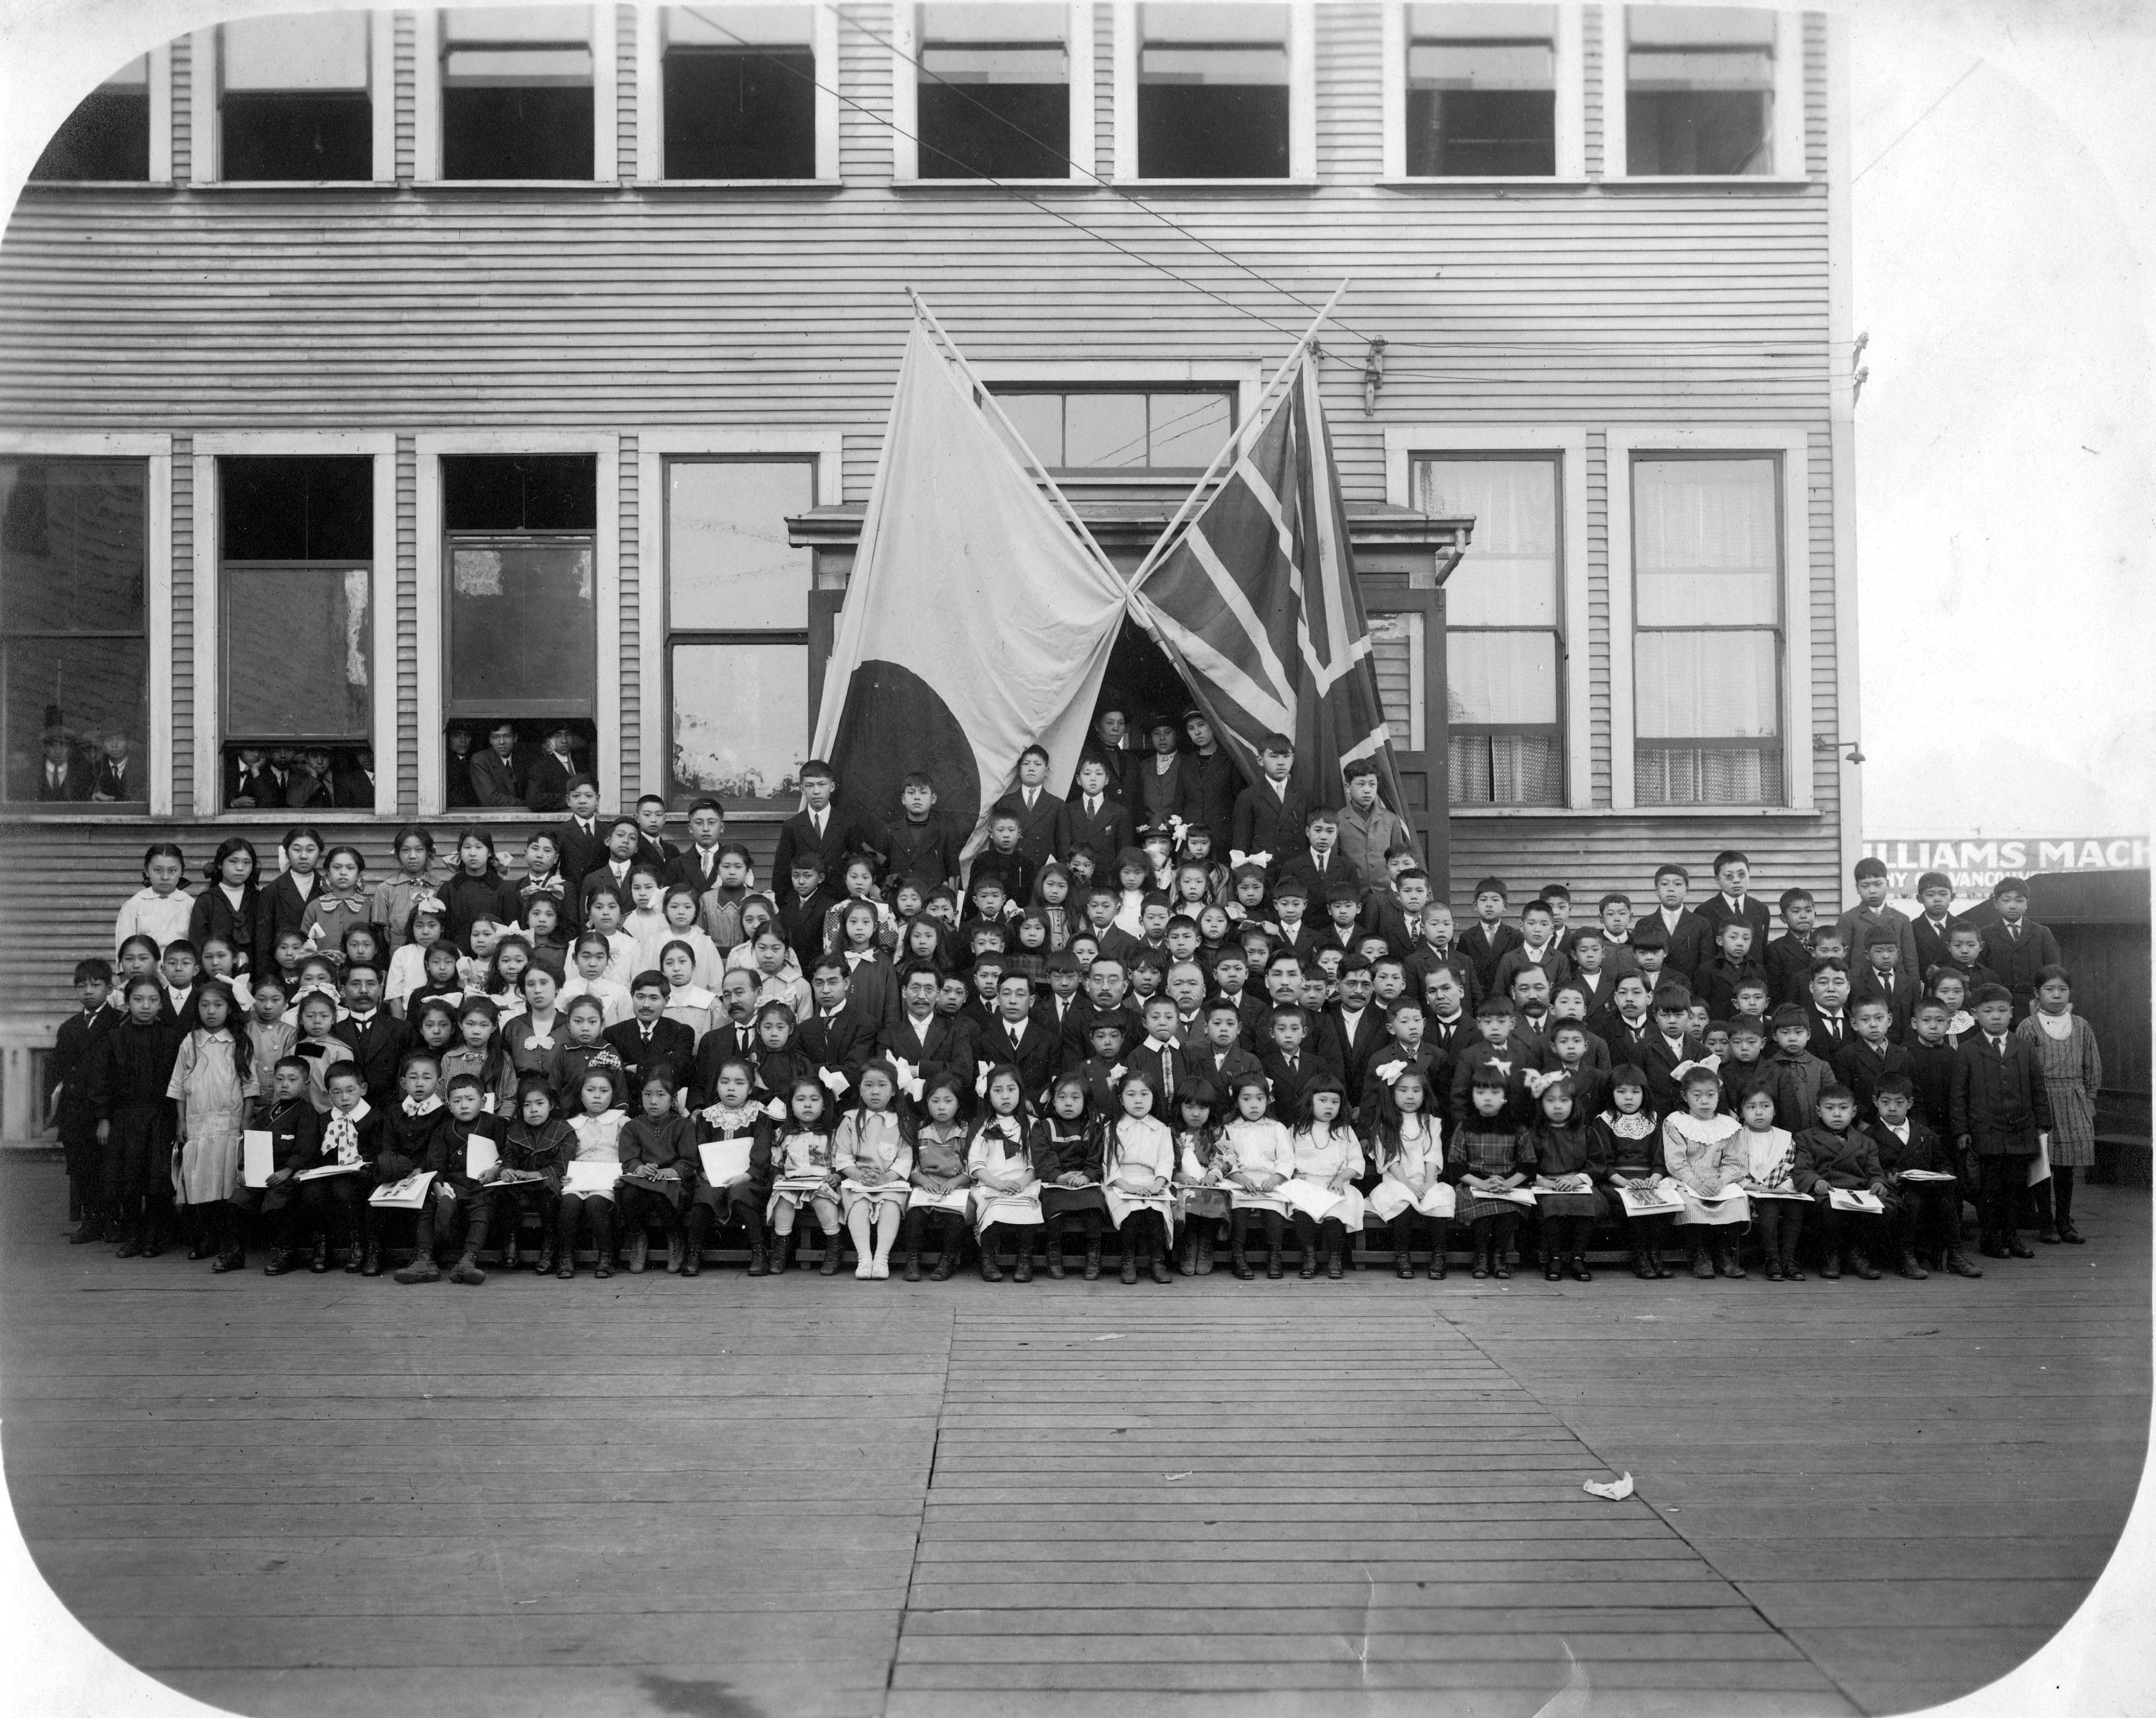 Another photo of a graduate class in front of the school.